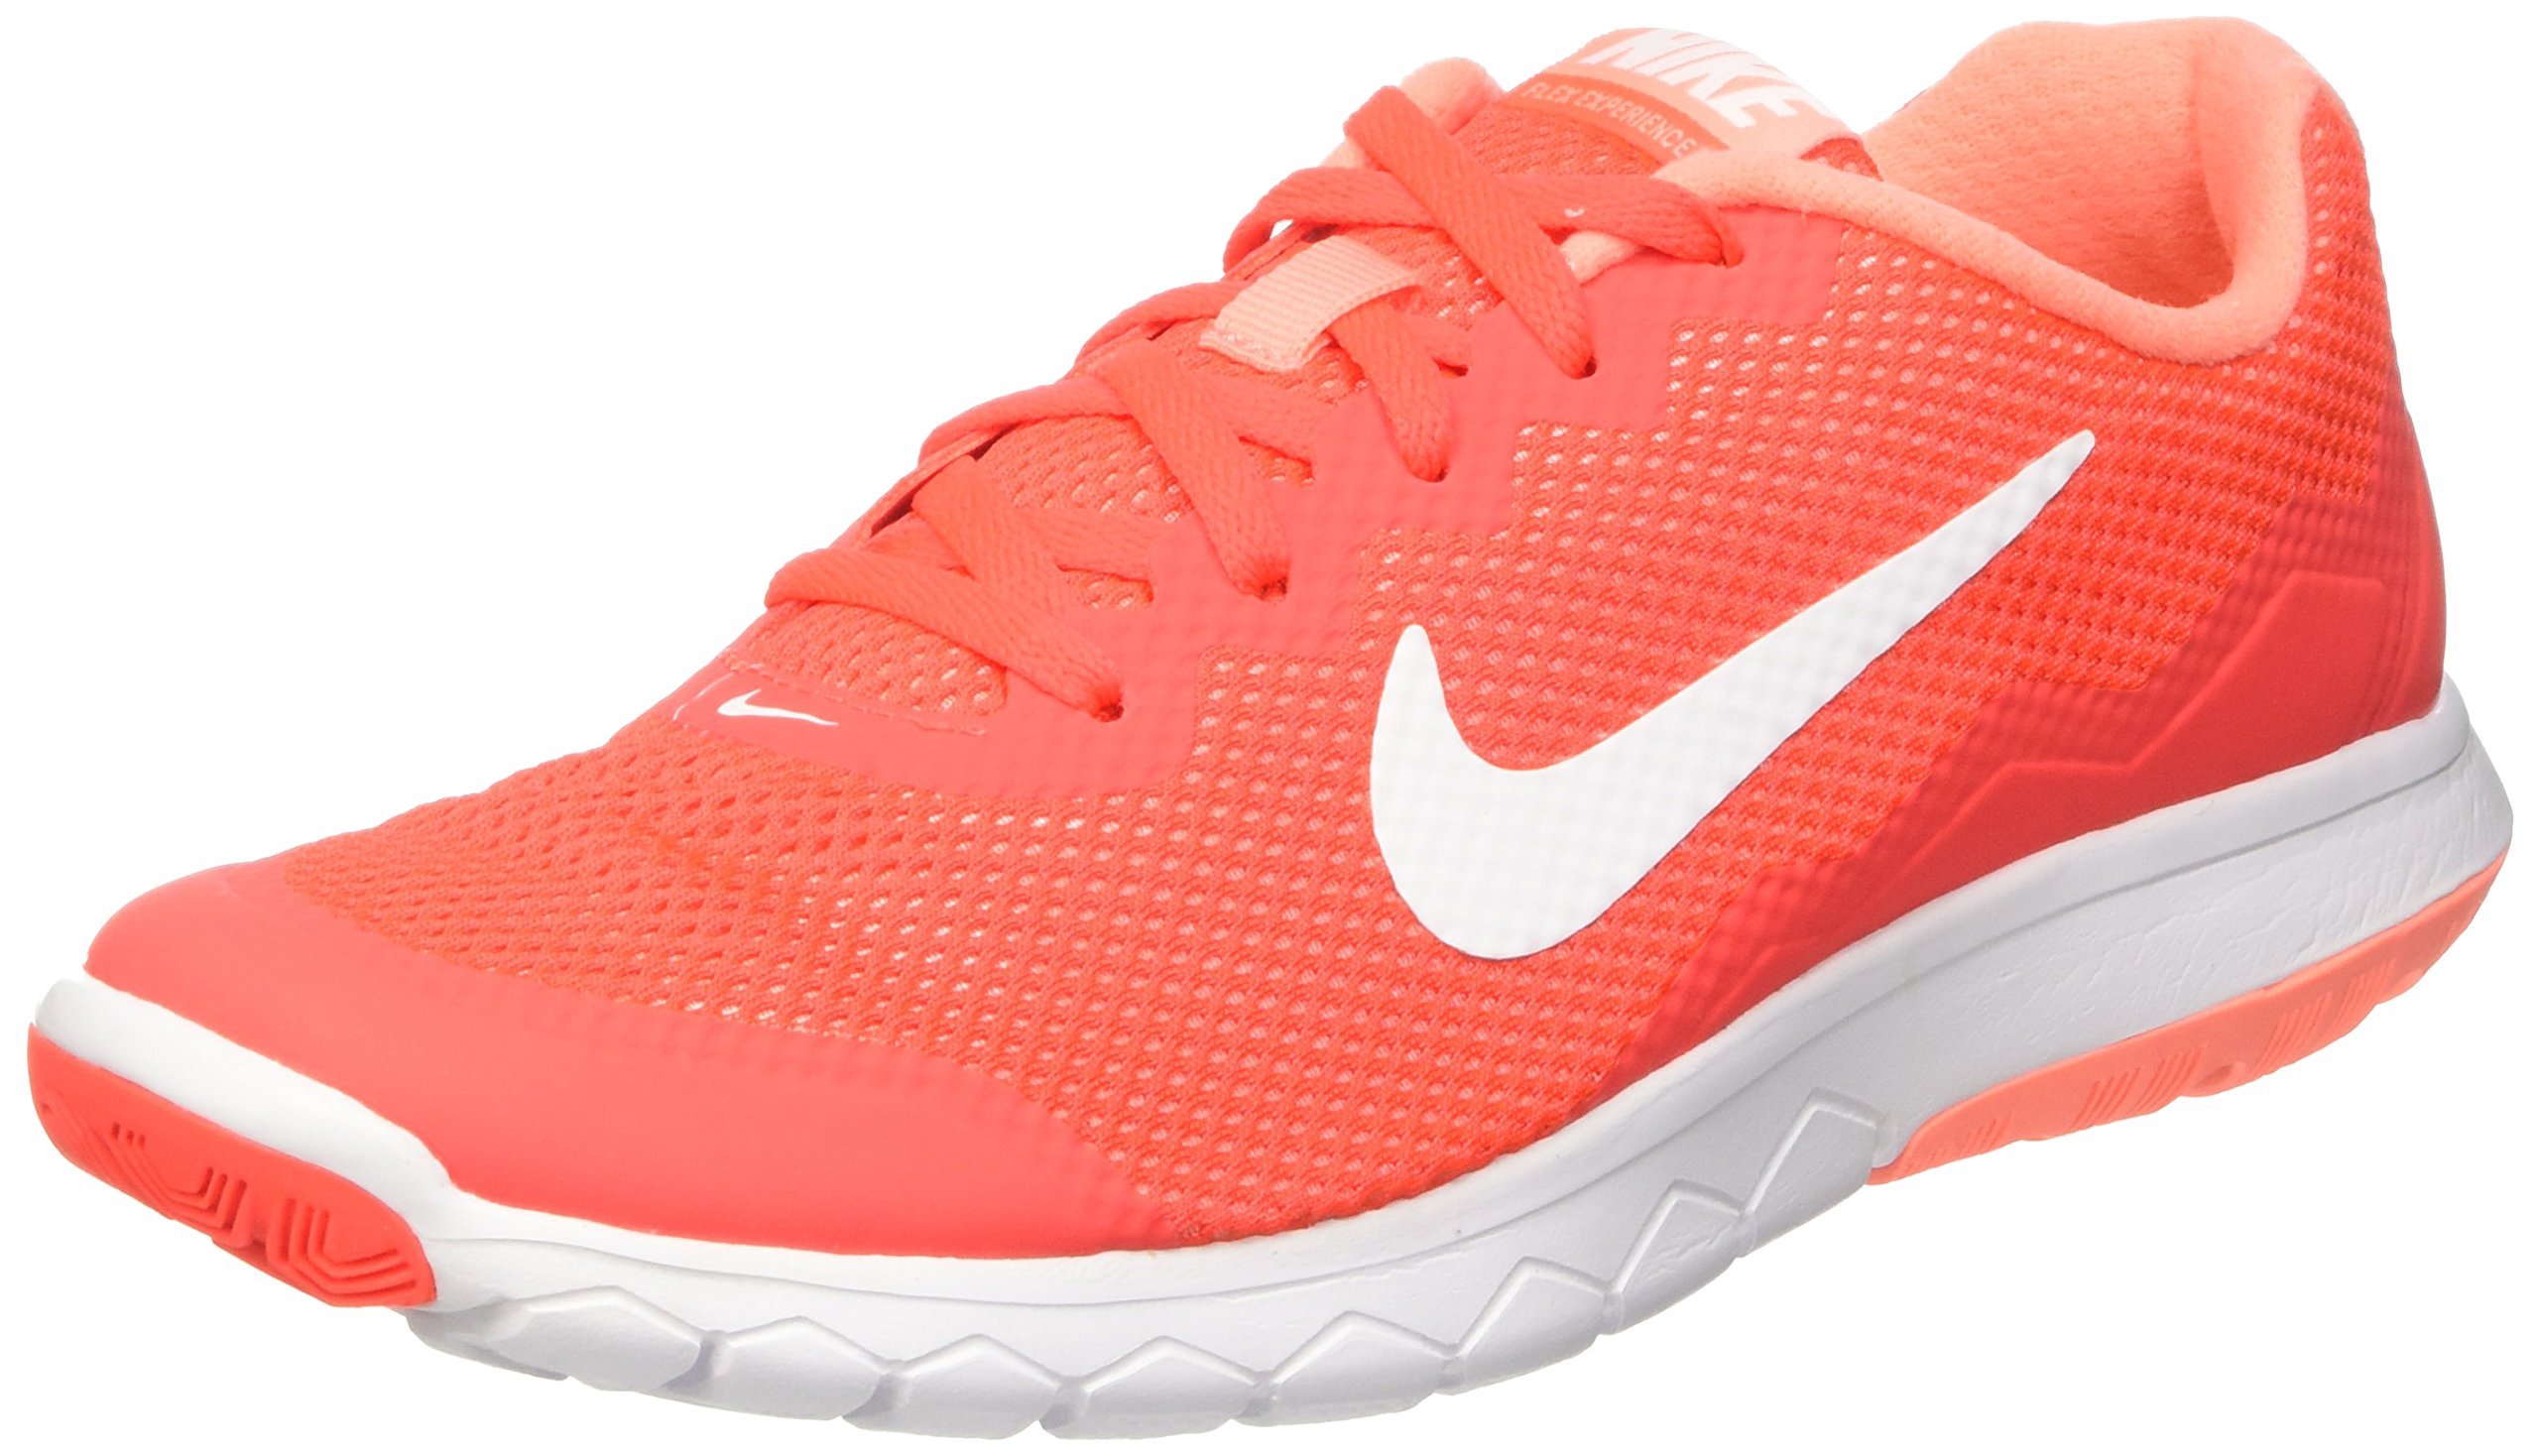 28b9bc1585fc Details about Nike Men s Shox NZ Running Shoe Bright Crimson White-Atomic  Pink-White - 5.5 .